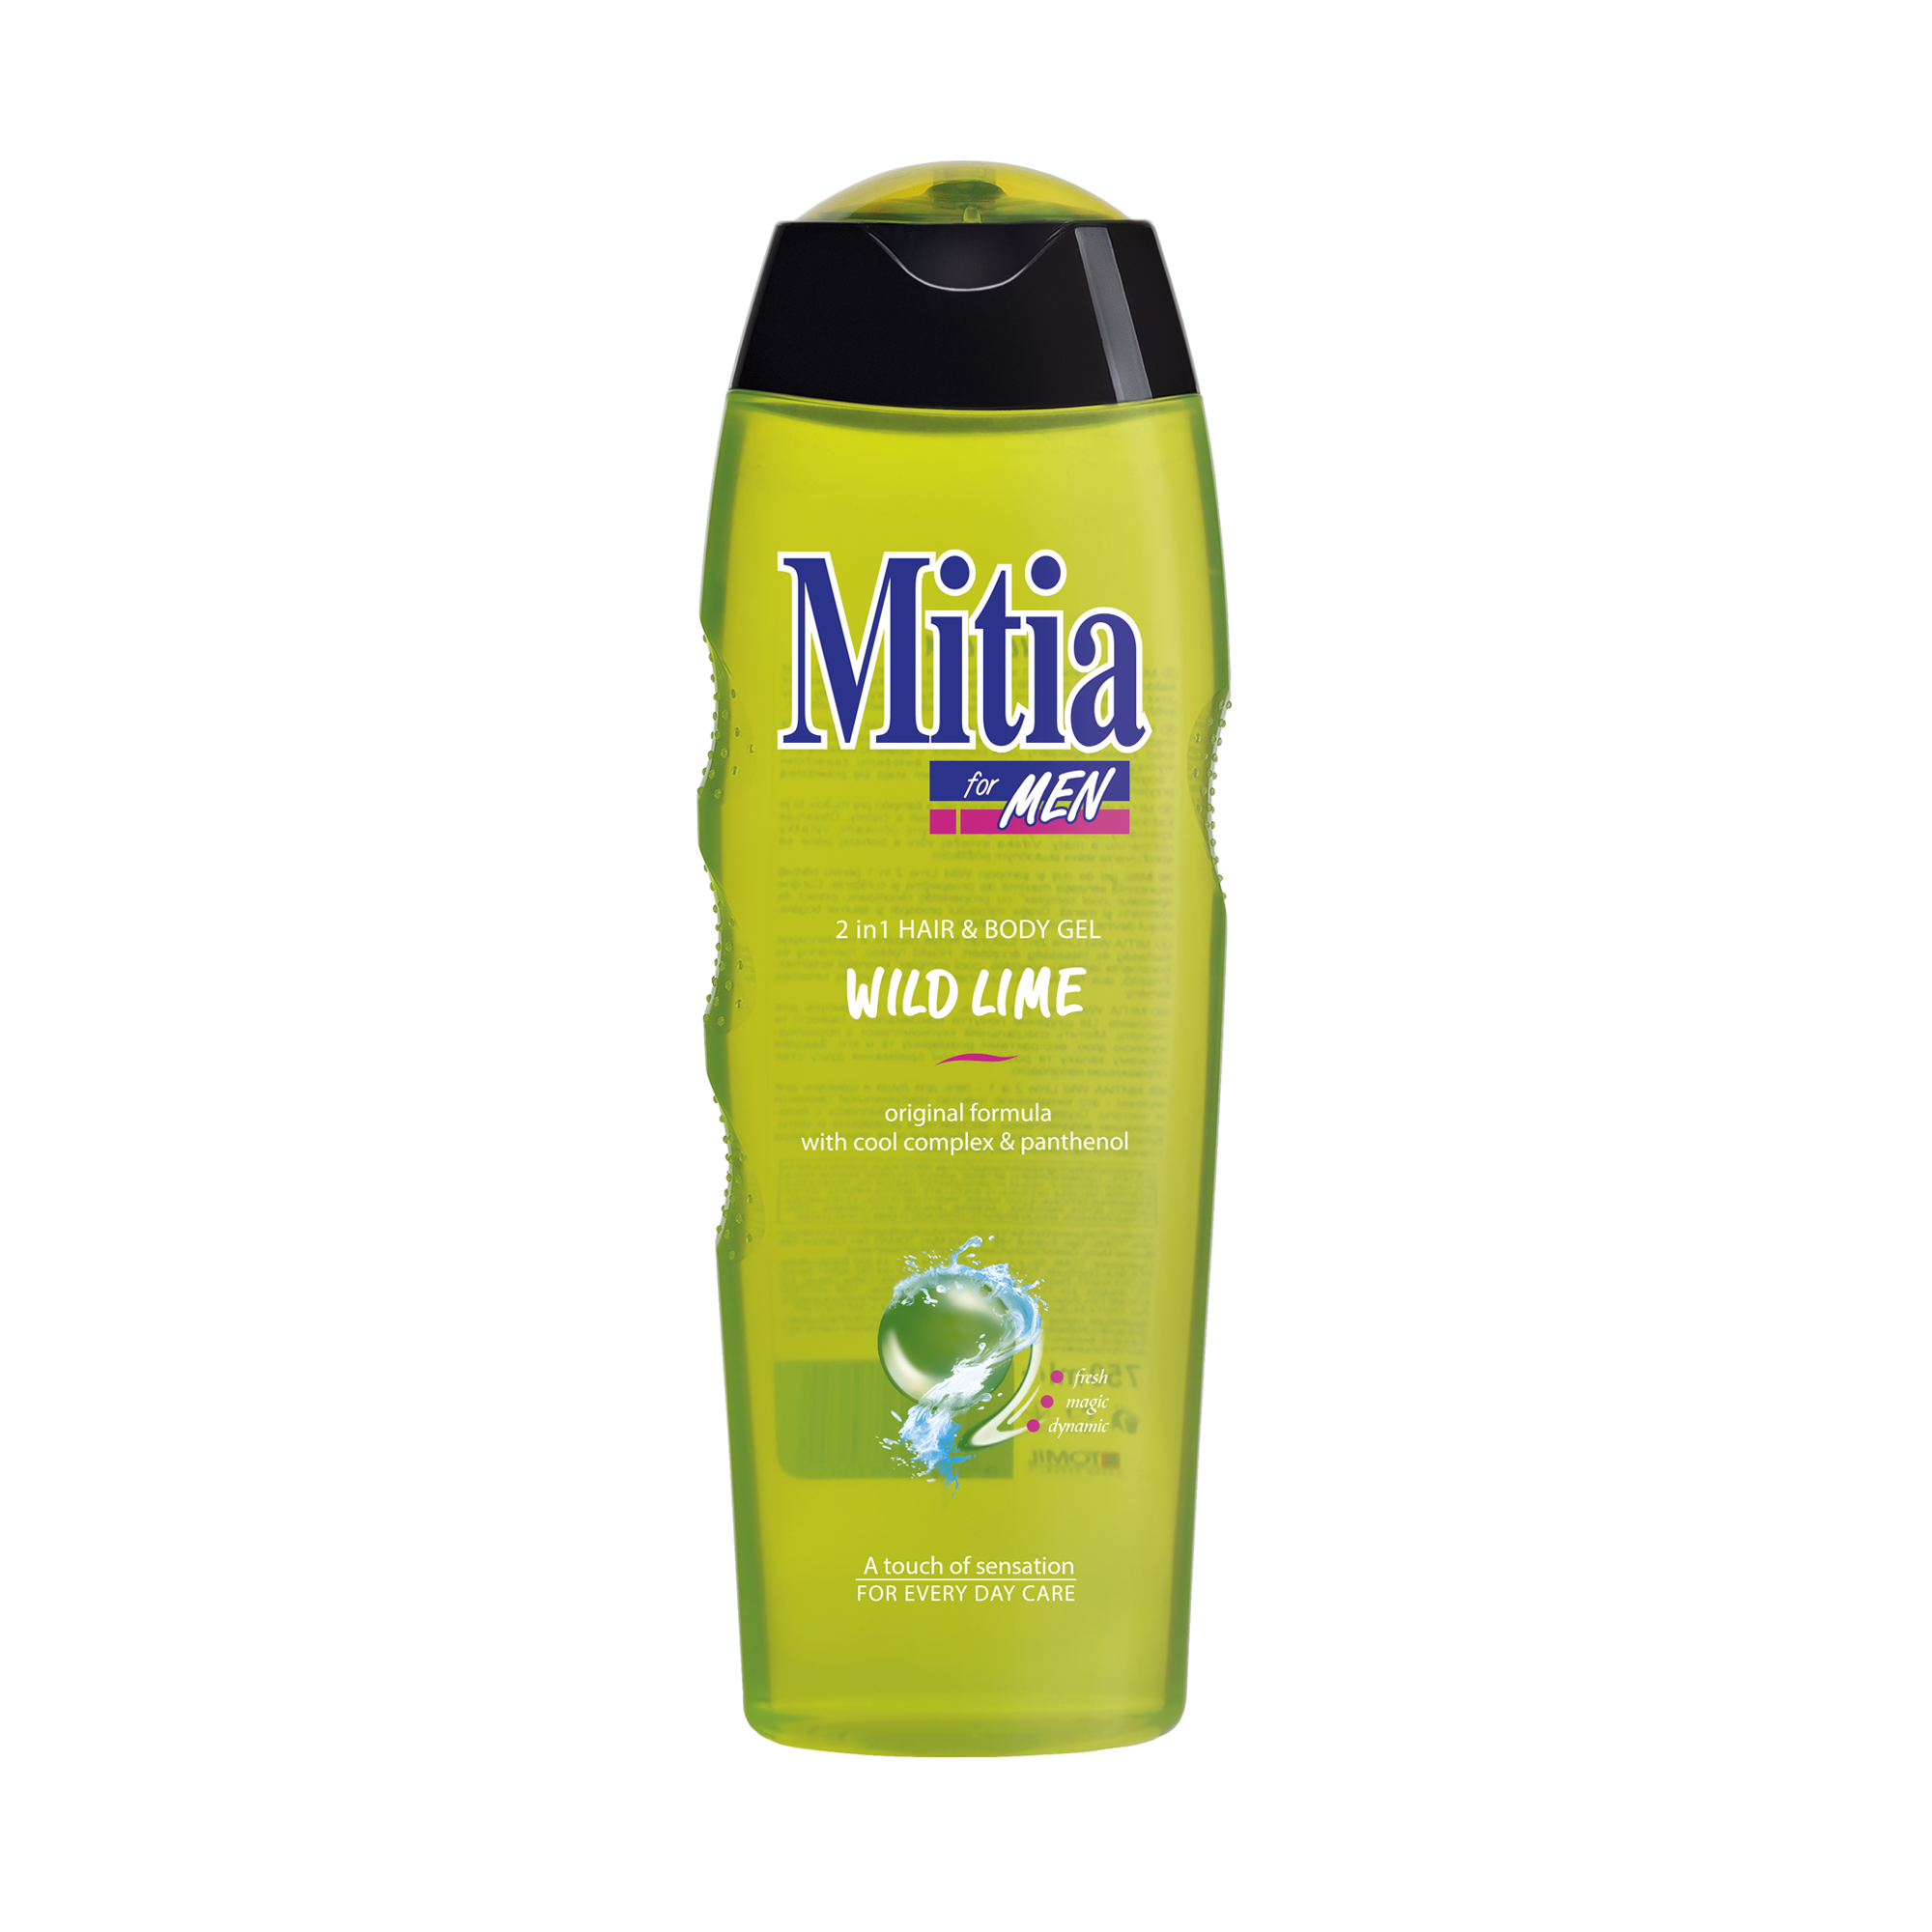 Mitia FOR MEN Wild Lime shower gel